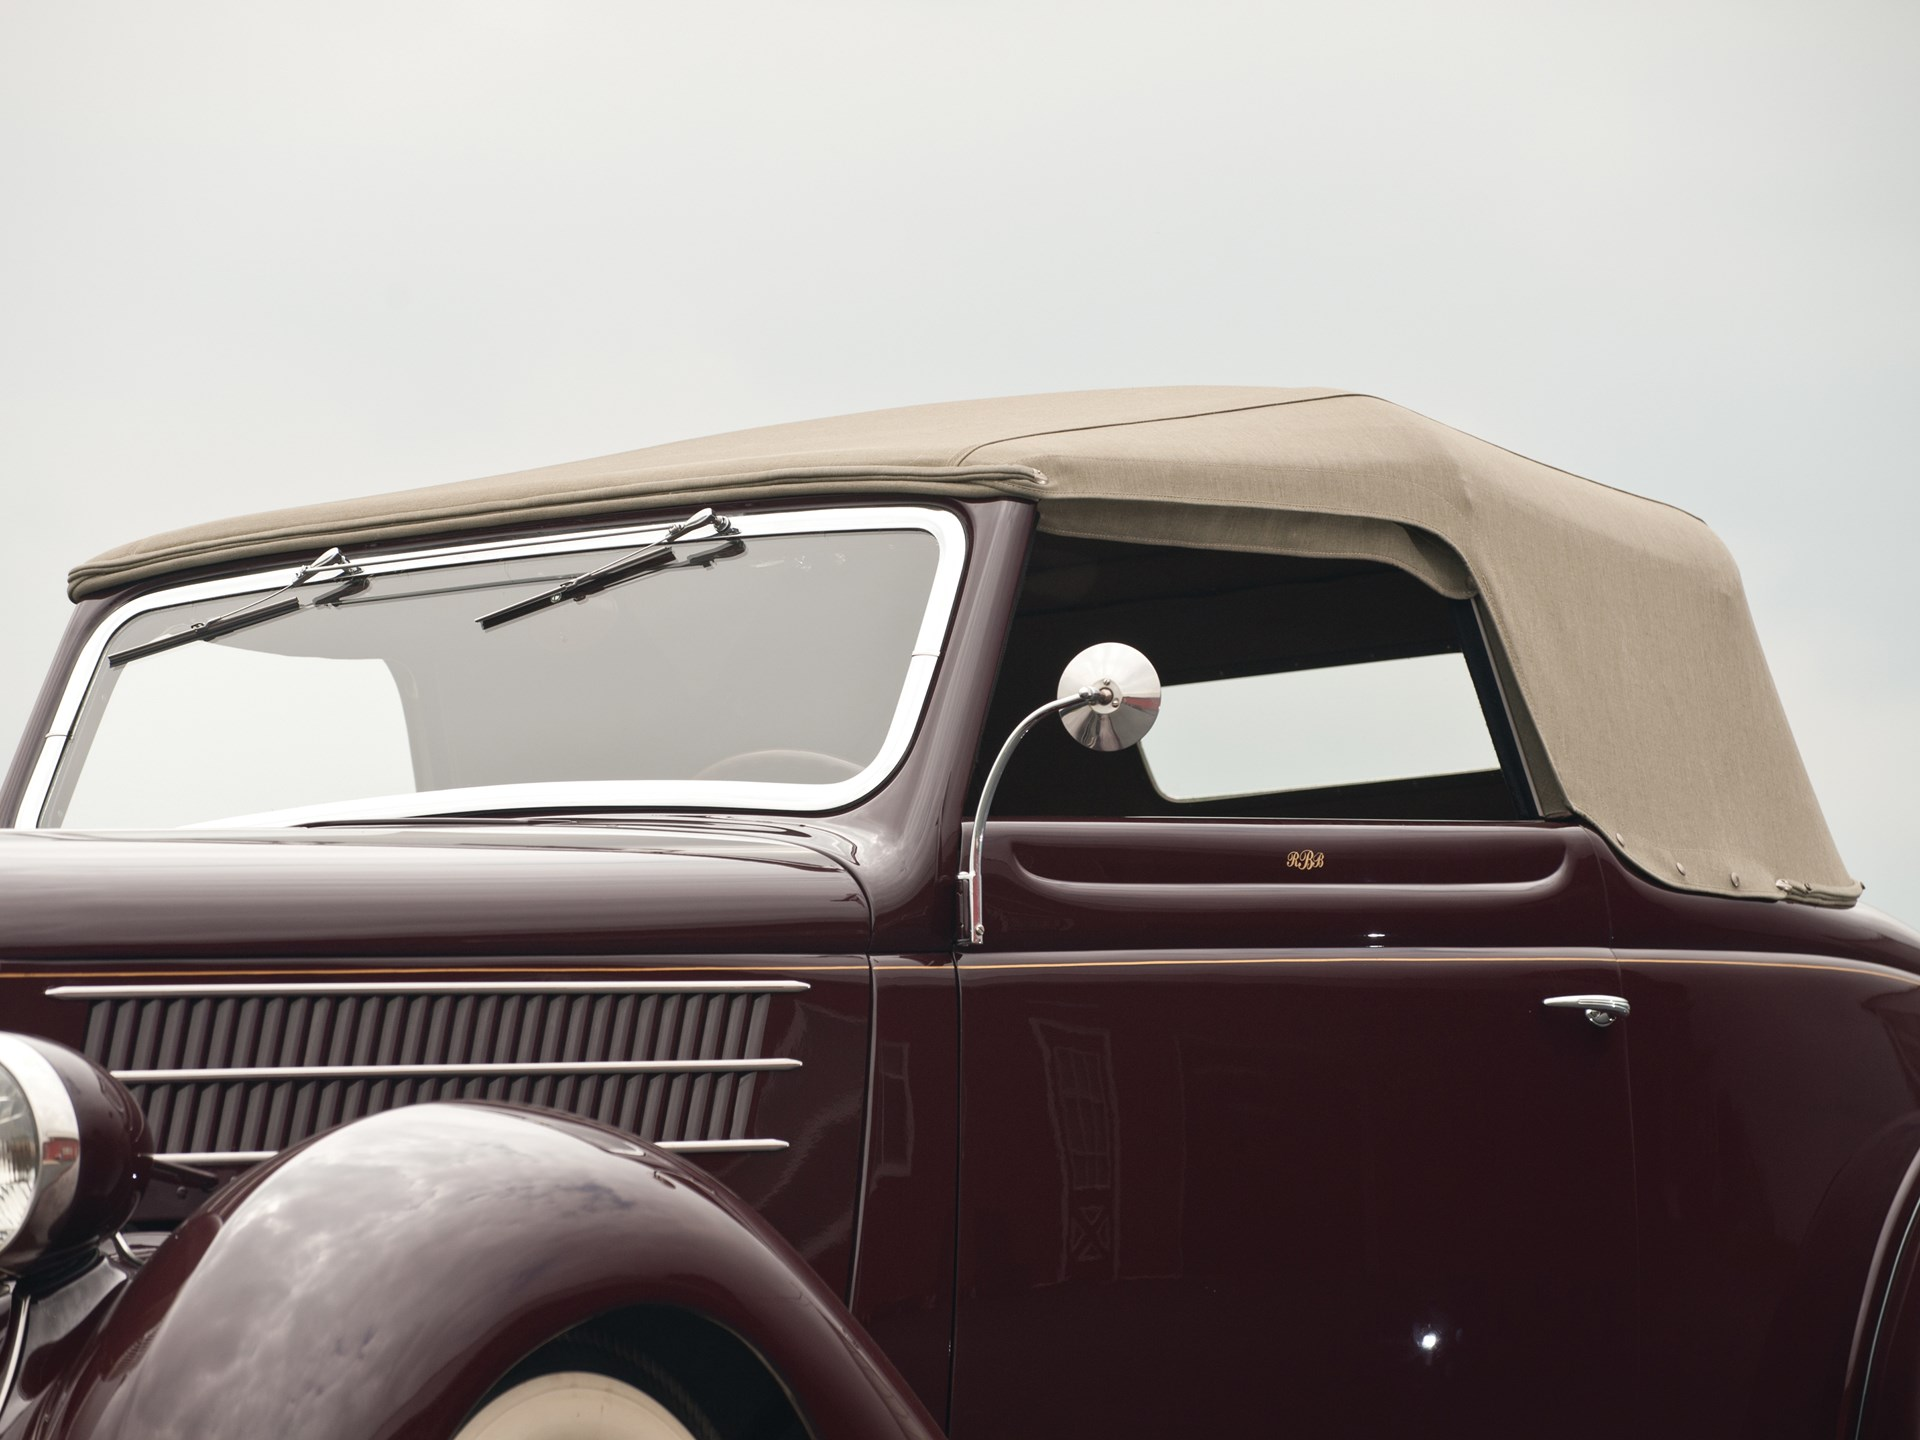 1936 Ford V-8 DeLuxe Cabriolet